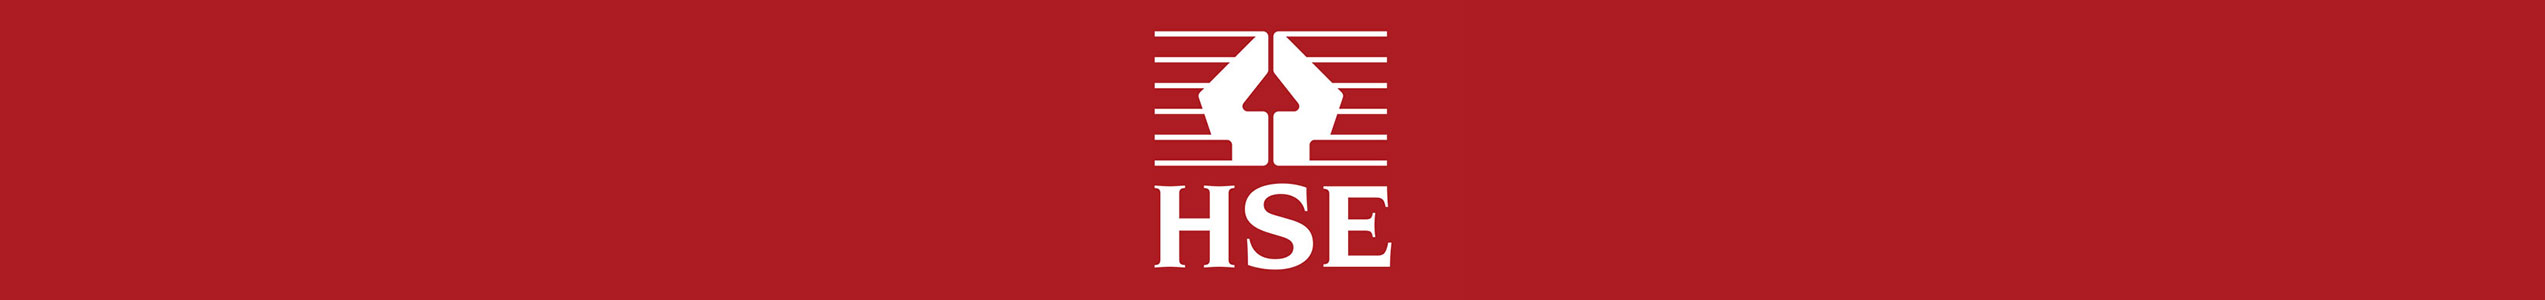 HSE-PPE-Guidelines-banner-image